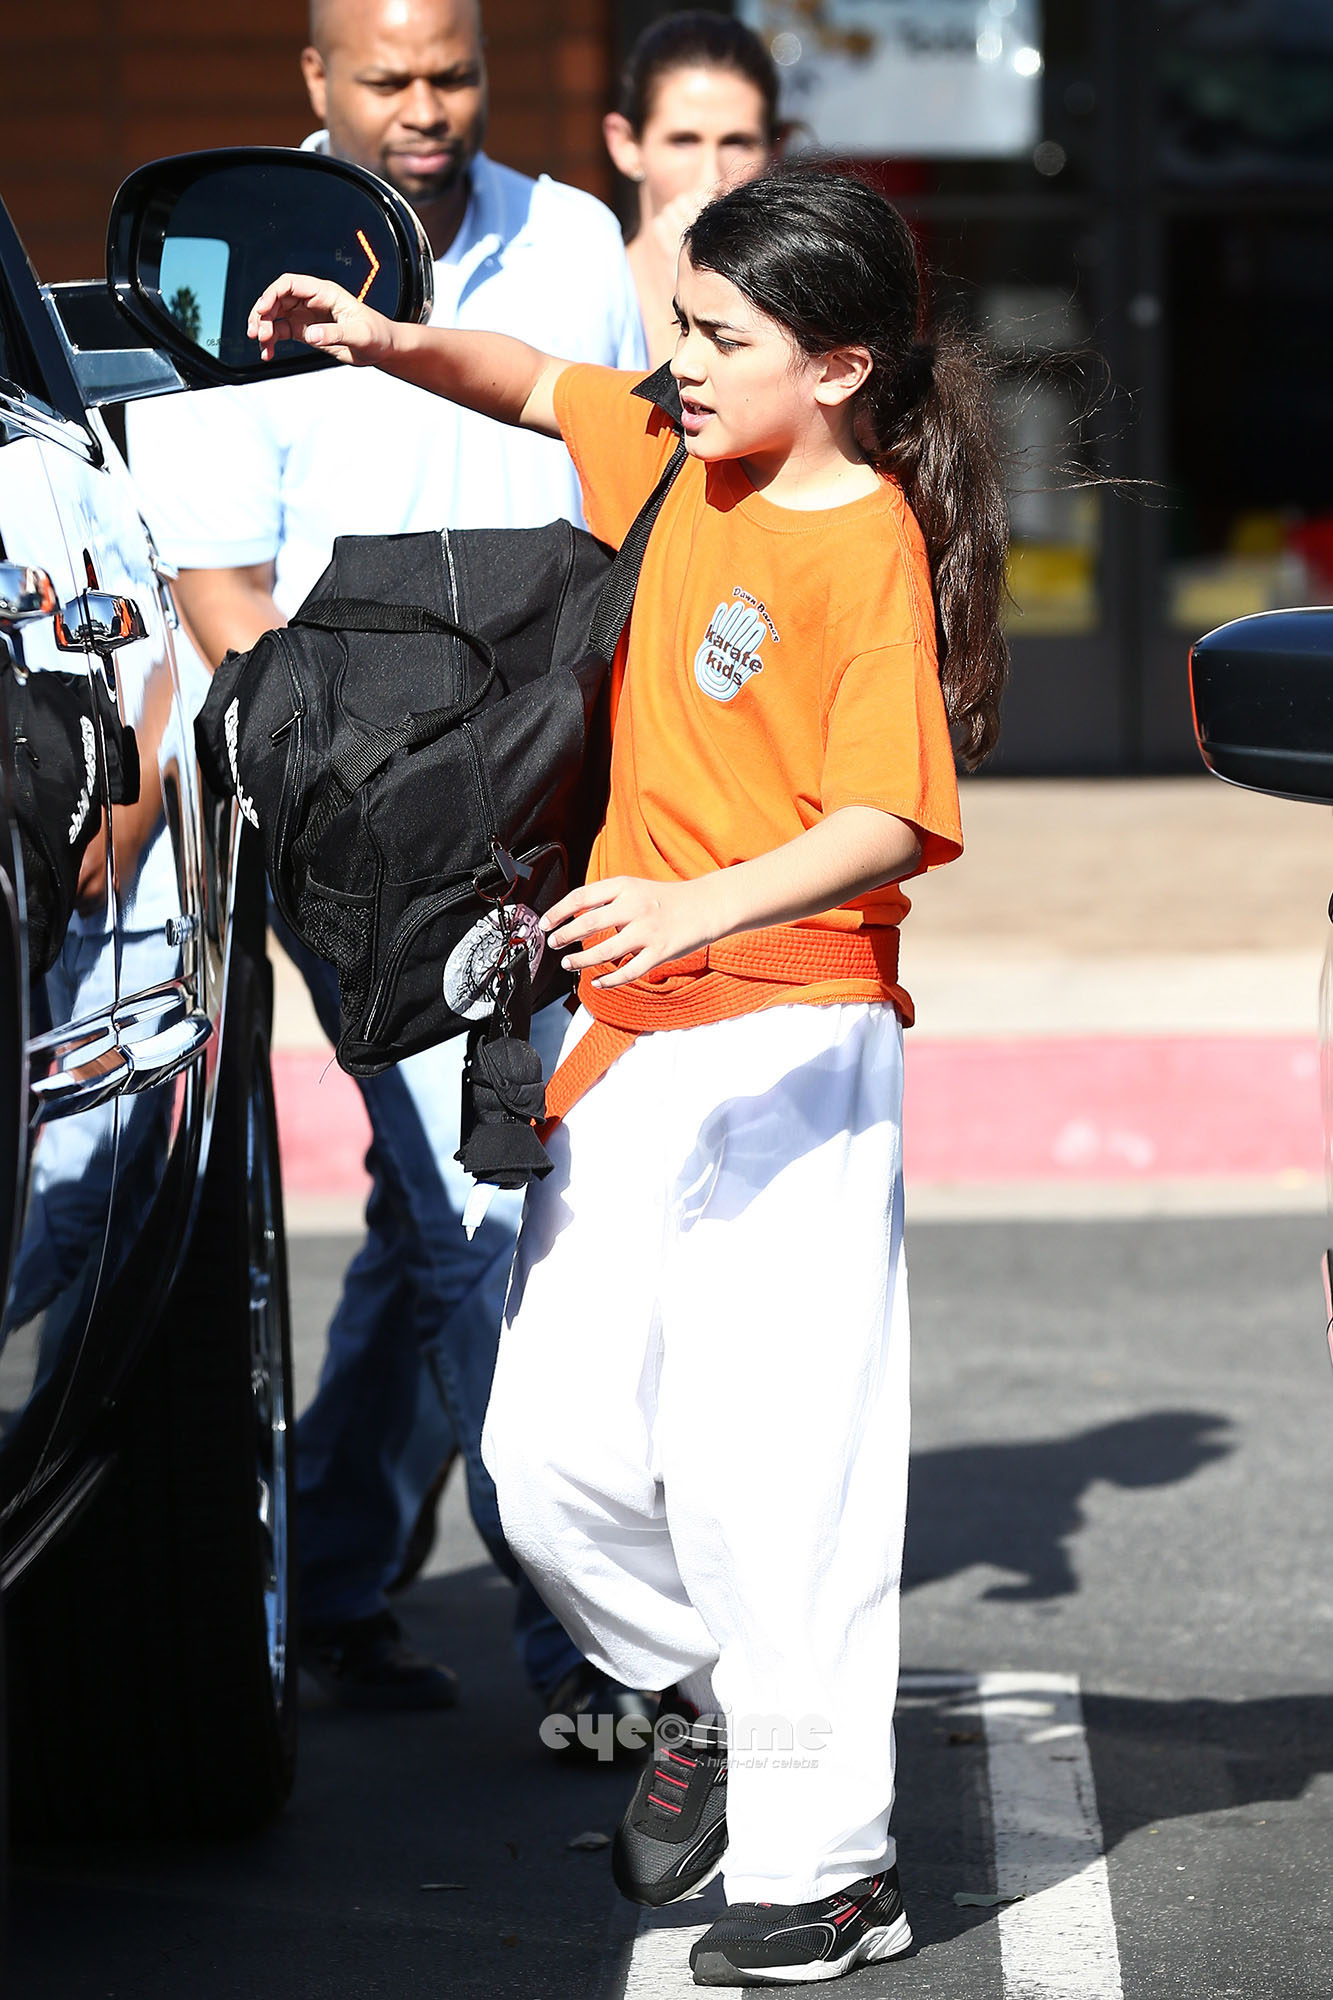 Blanket Jackson at the Karate Dawn in Encino NEW May 2013 ♥♥